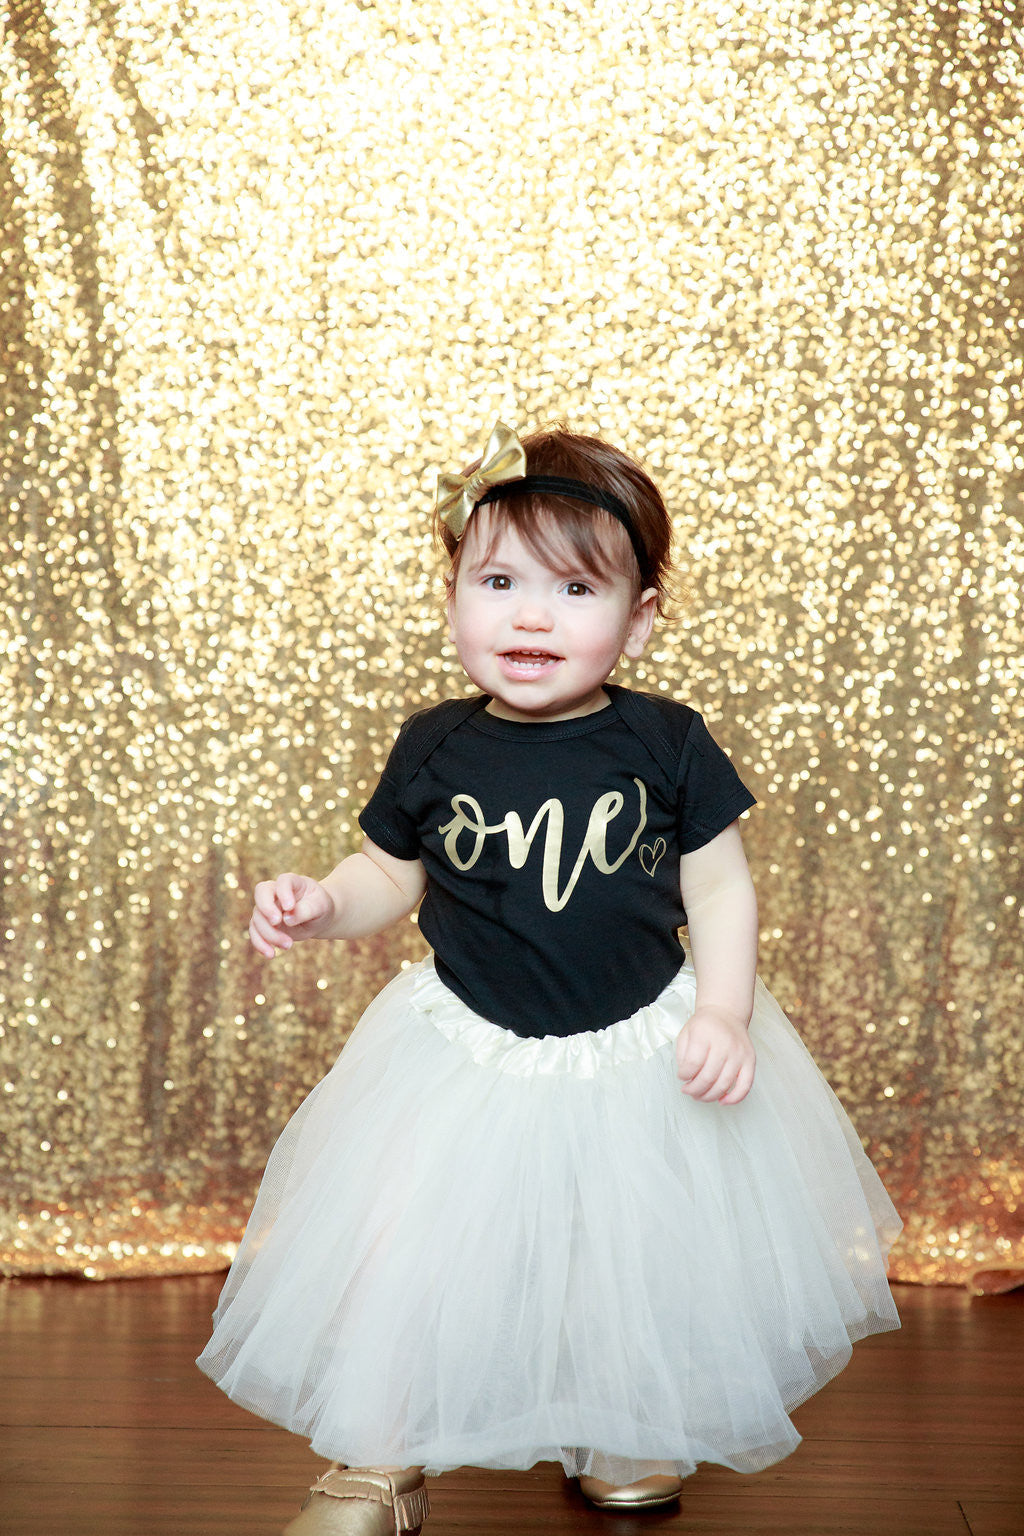 1st Birthday Tutu Outfits.Live Sale 1st Birthday Girl Outfit Gold First Birthday Outfit Birthday Tutu Ivory Black Tutu Outfit Cake Smash Outfit